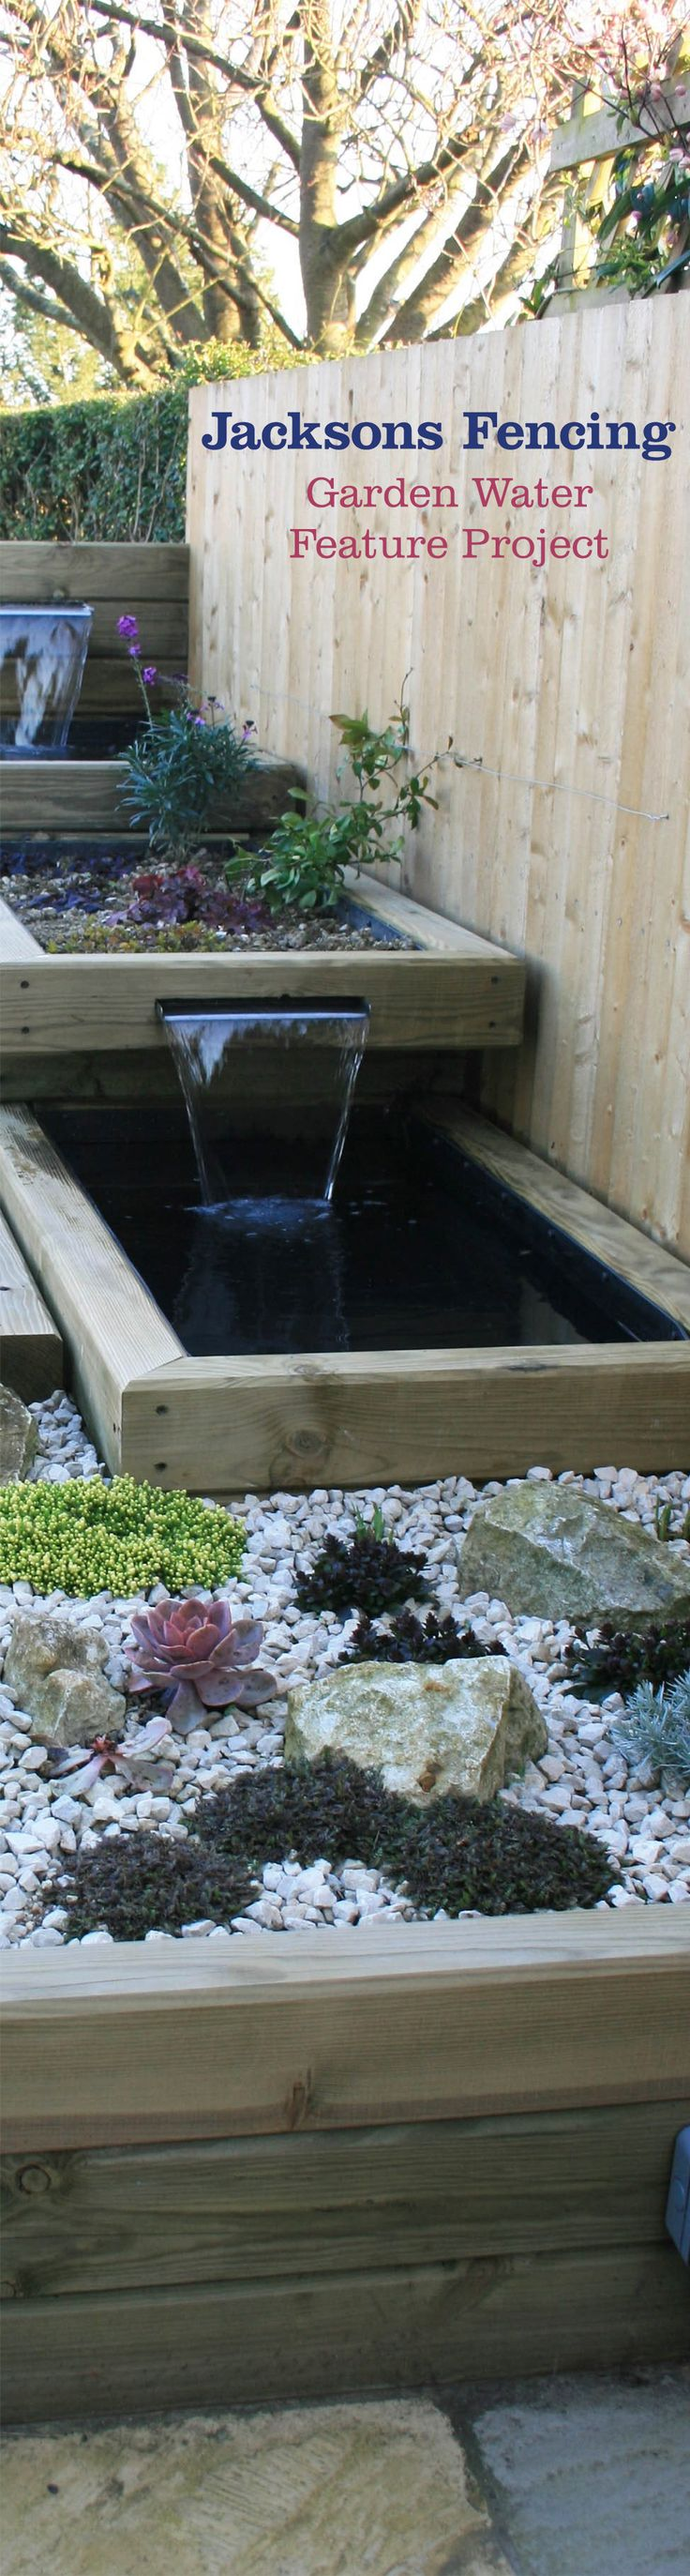 Vegetable garden plans for beginners ayanahouse - A Garden Water Feature Project Featuring Jakwall Timbers This Beautiful Landscape Design Is Perfect